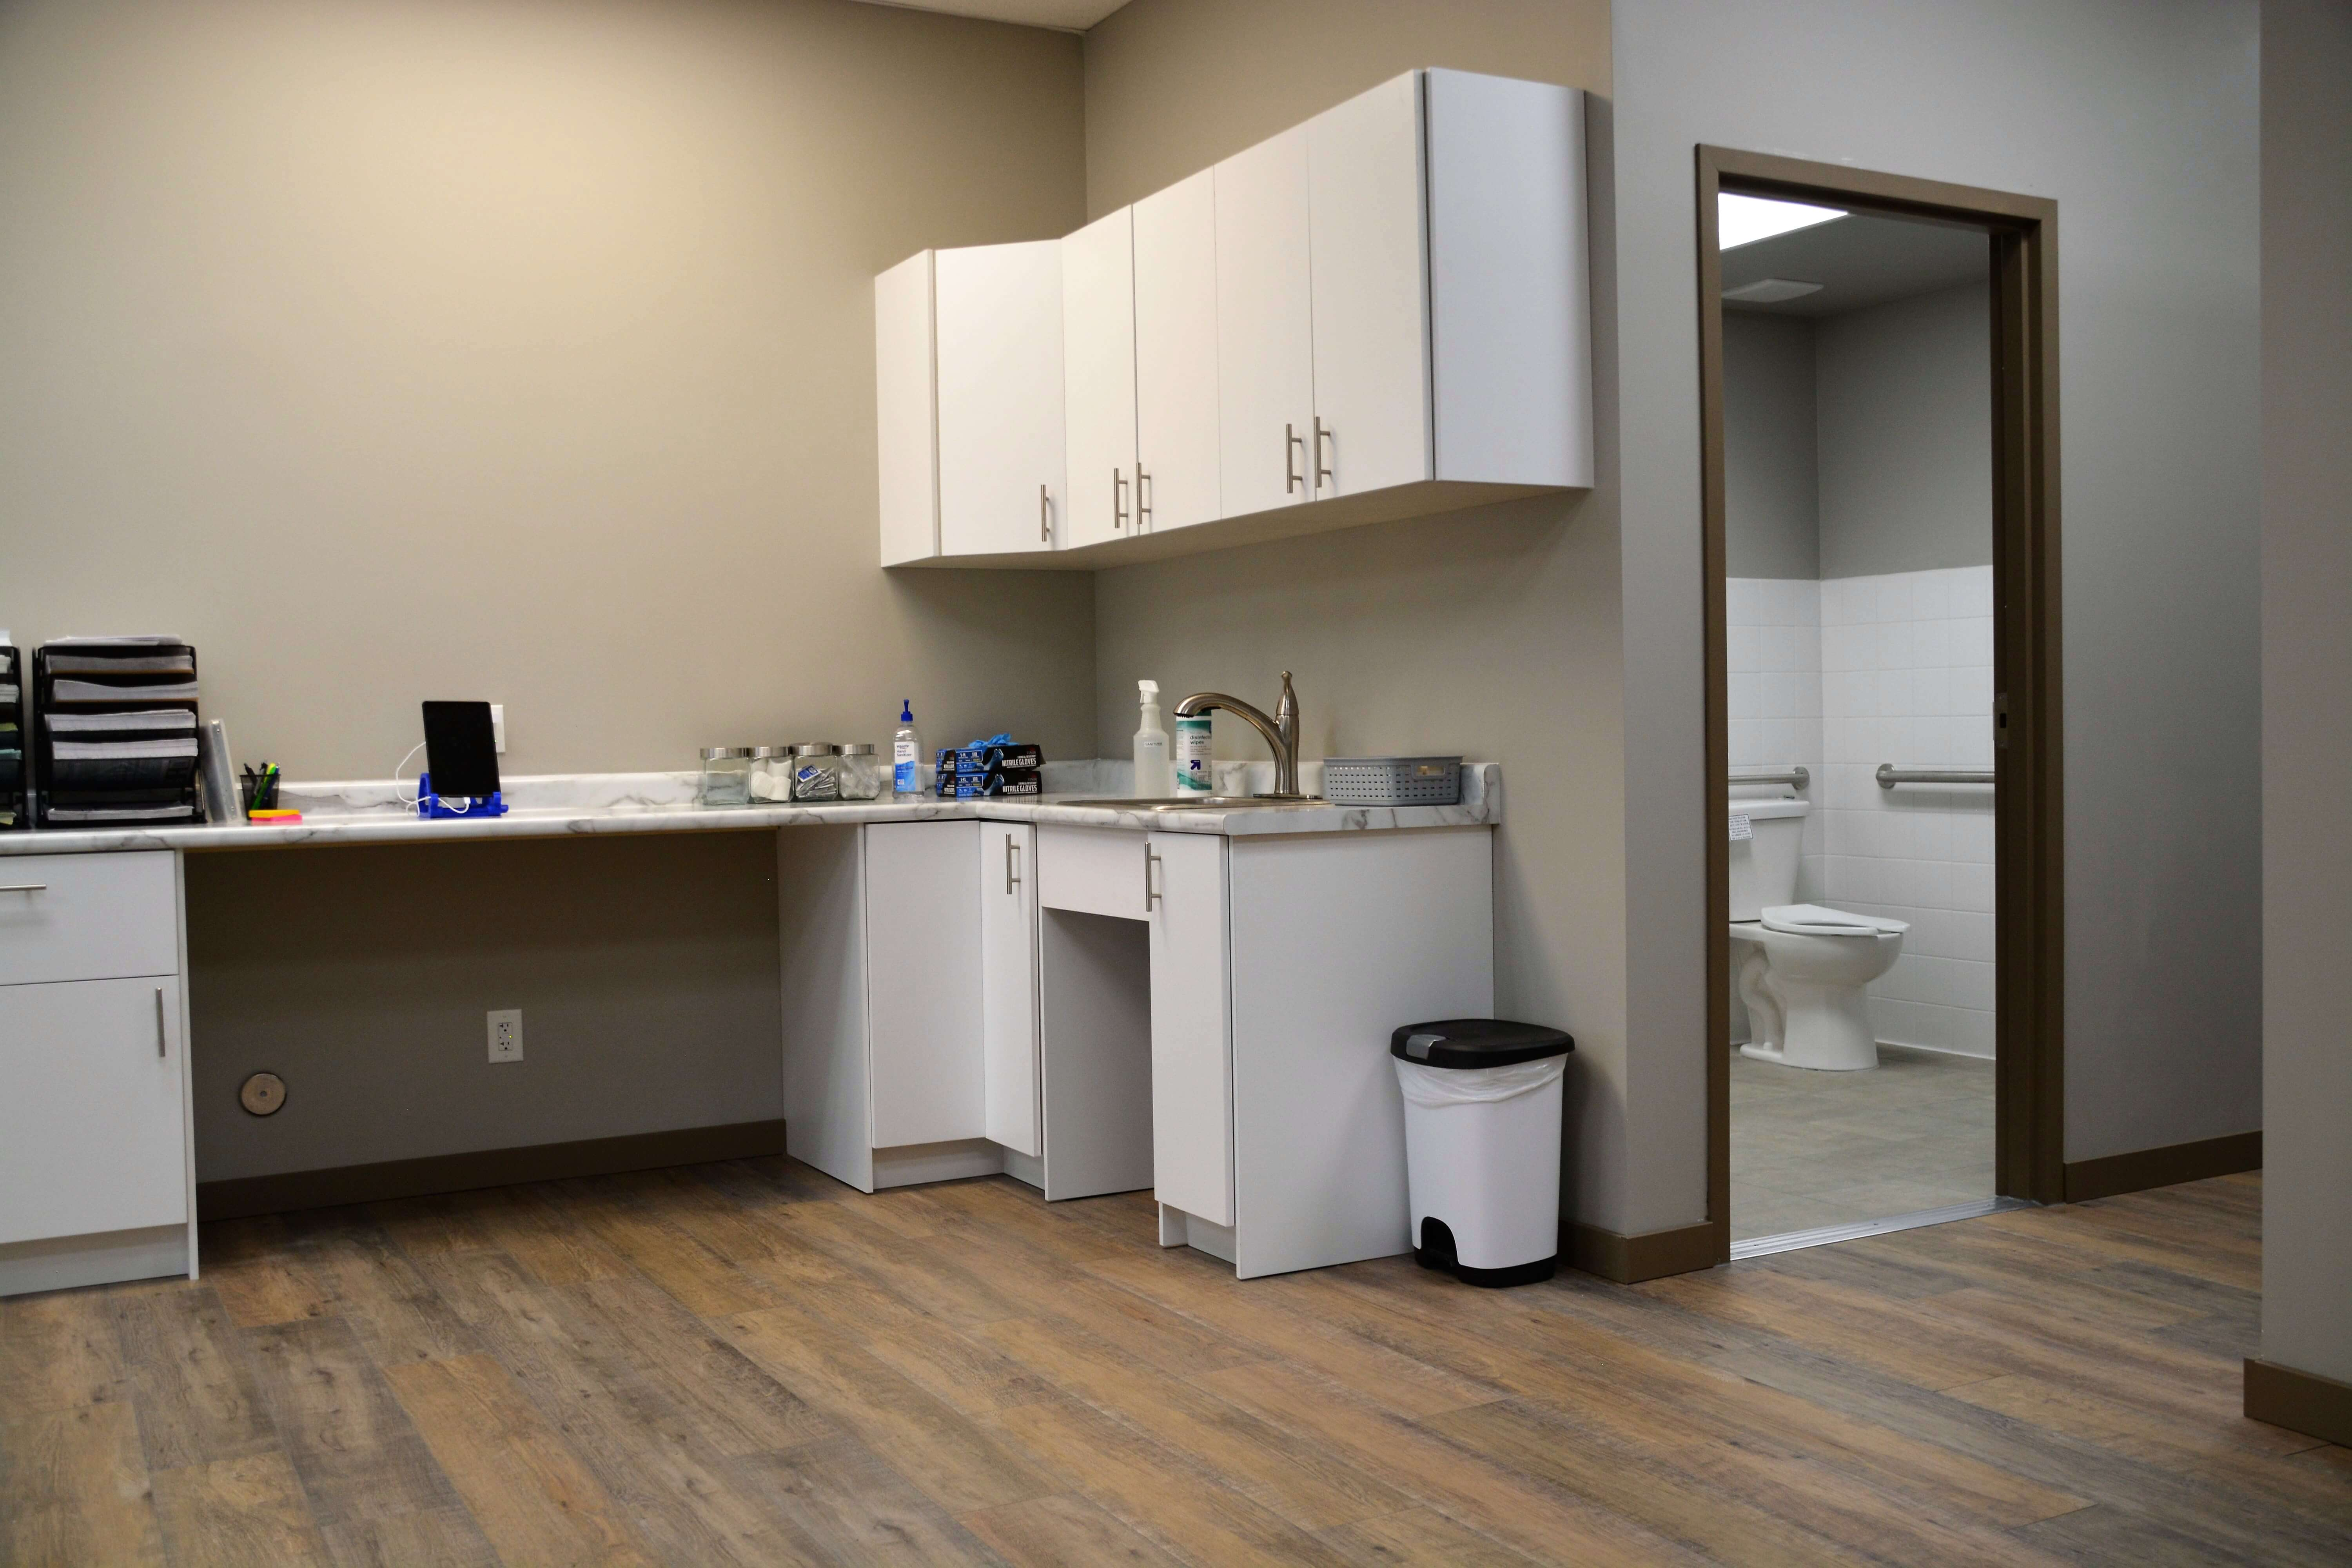 Lab and Bathroom